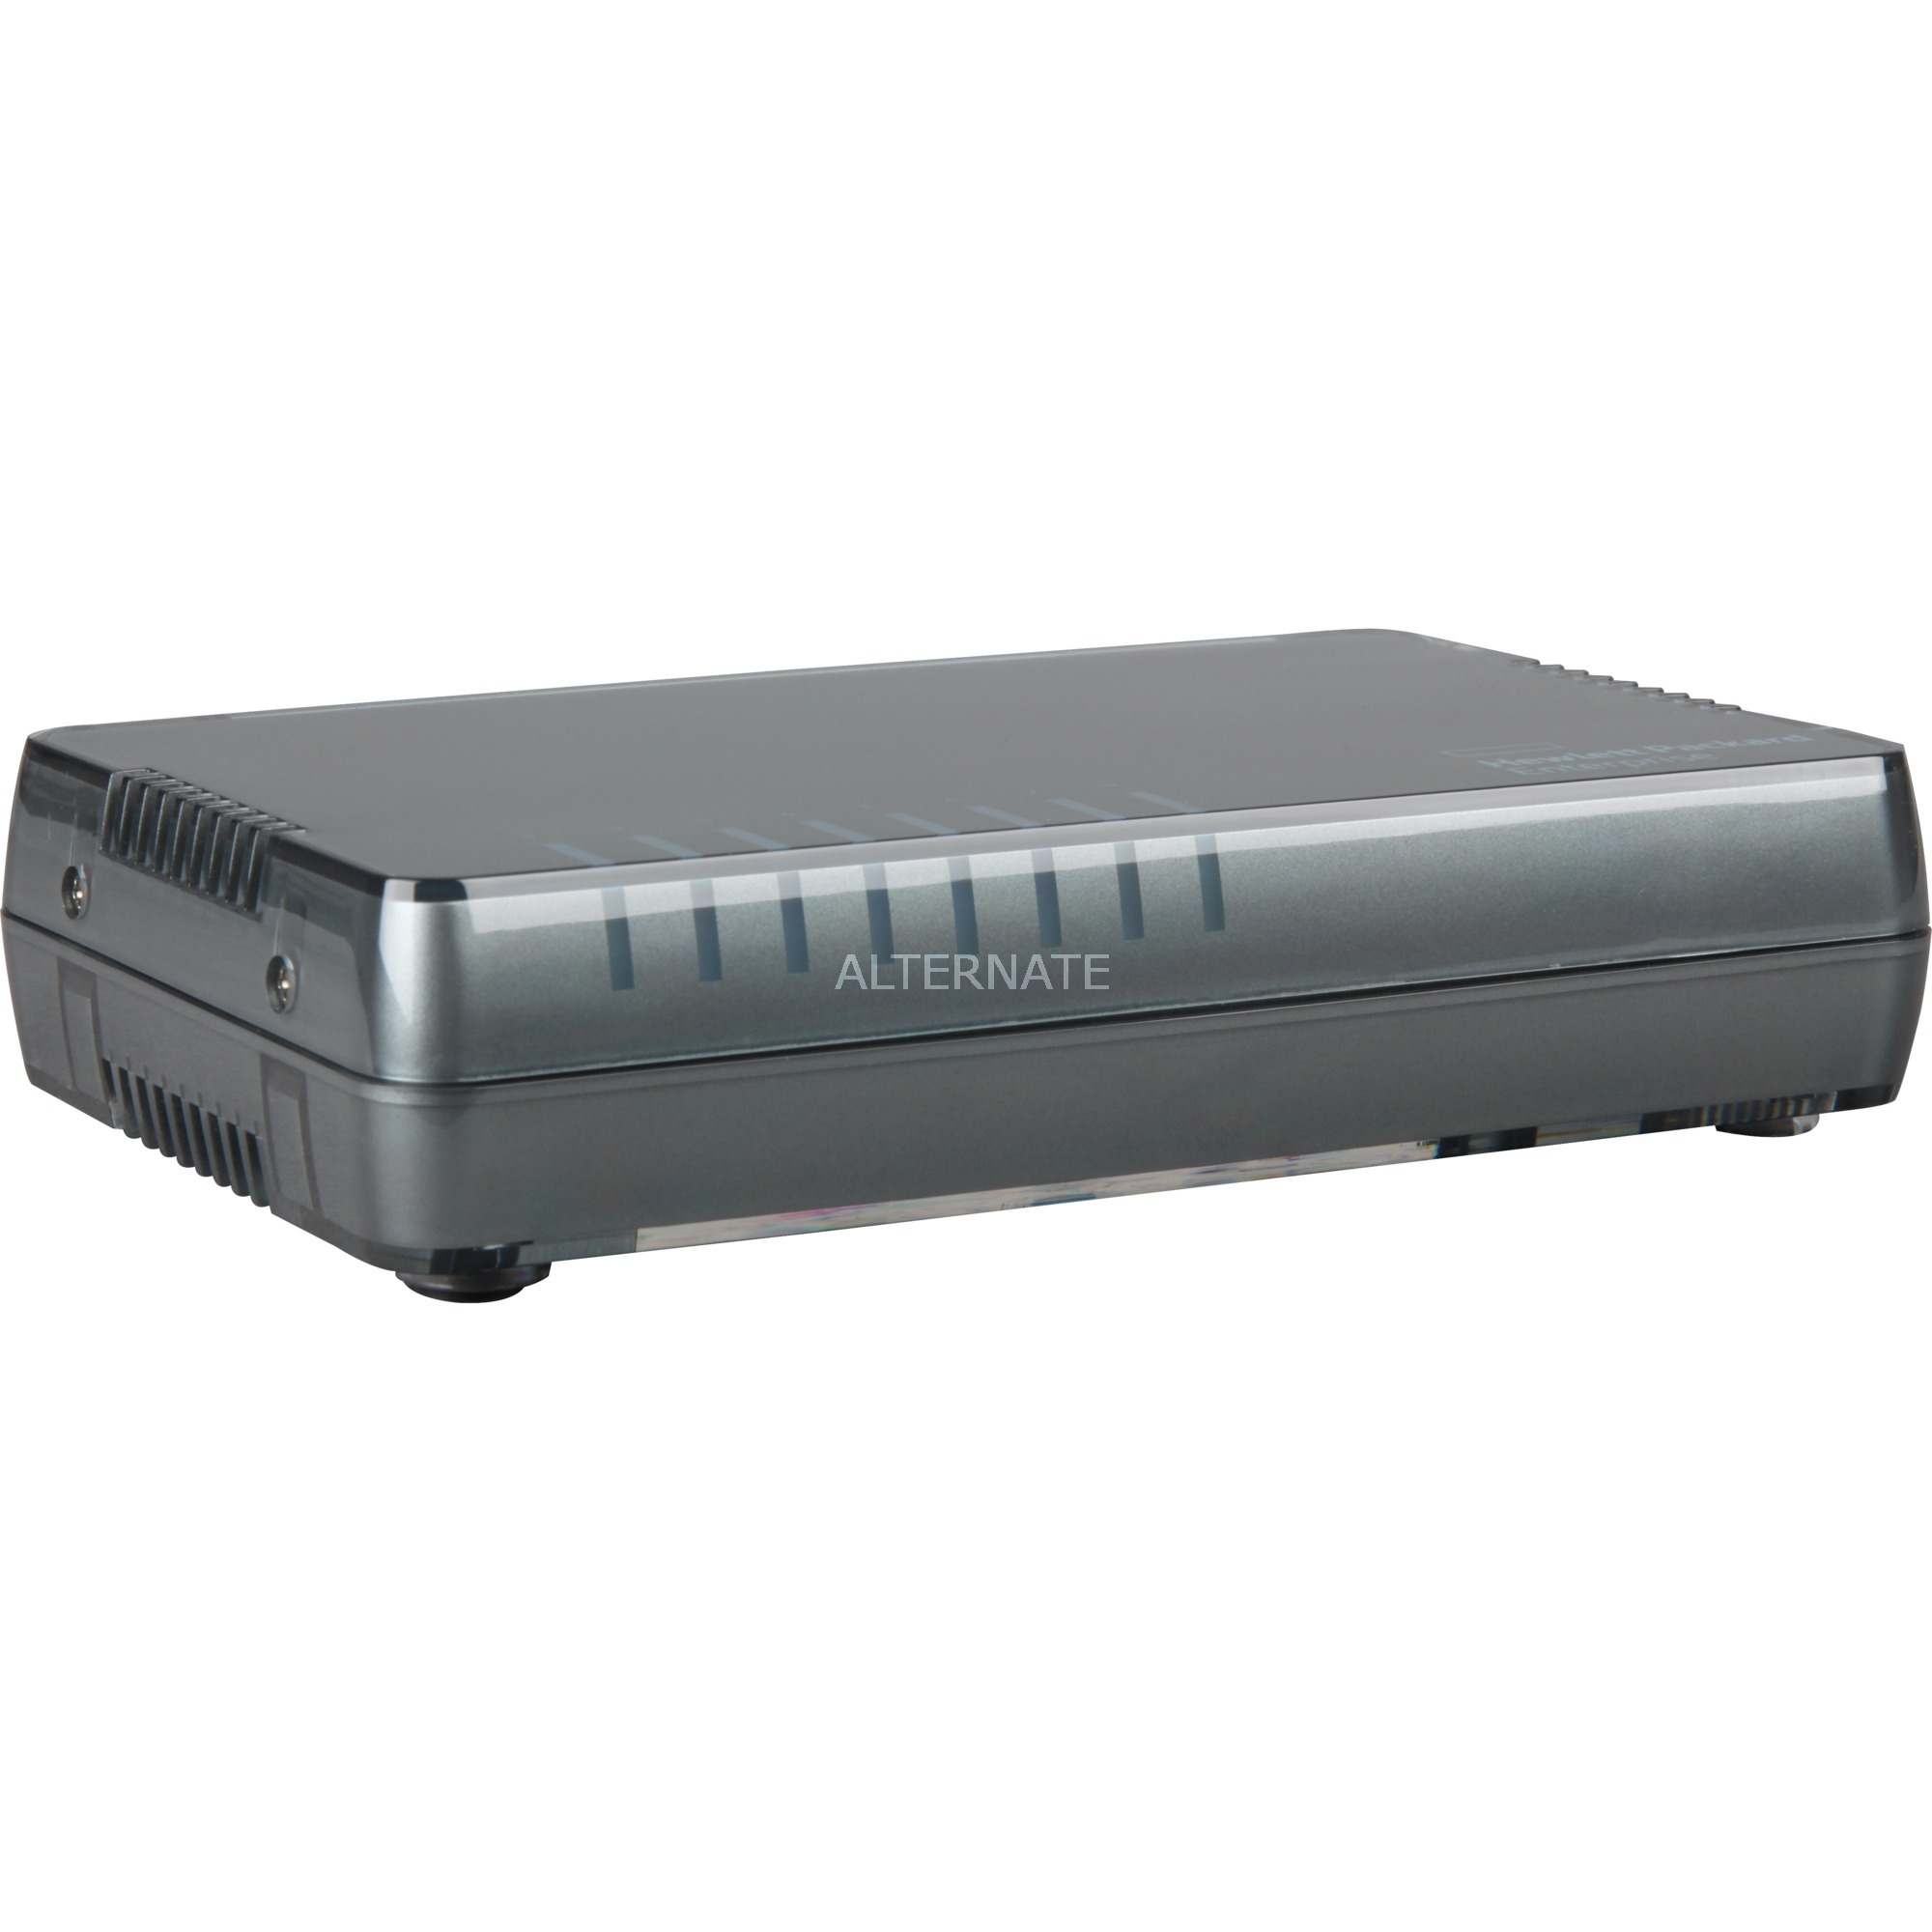 OfficeConnect 1405 8G v3 No administrado L2 Gigabit Ethernet (10/100/1000) Gris, Interruptor/Conmutador